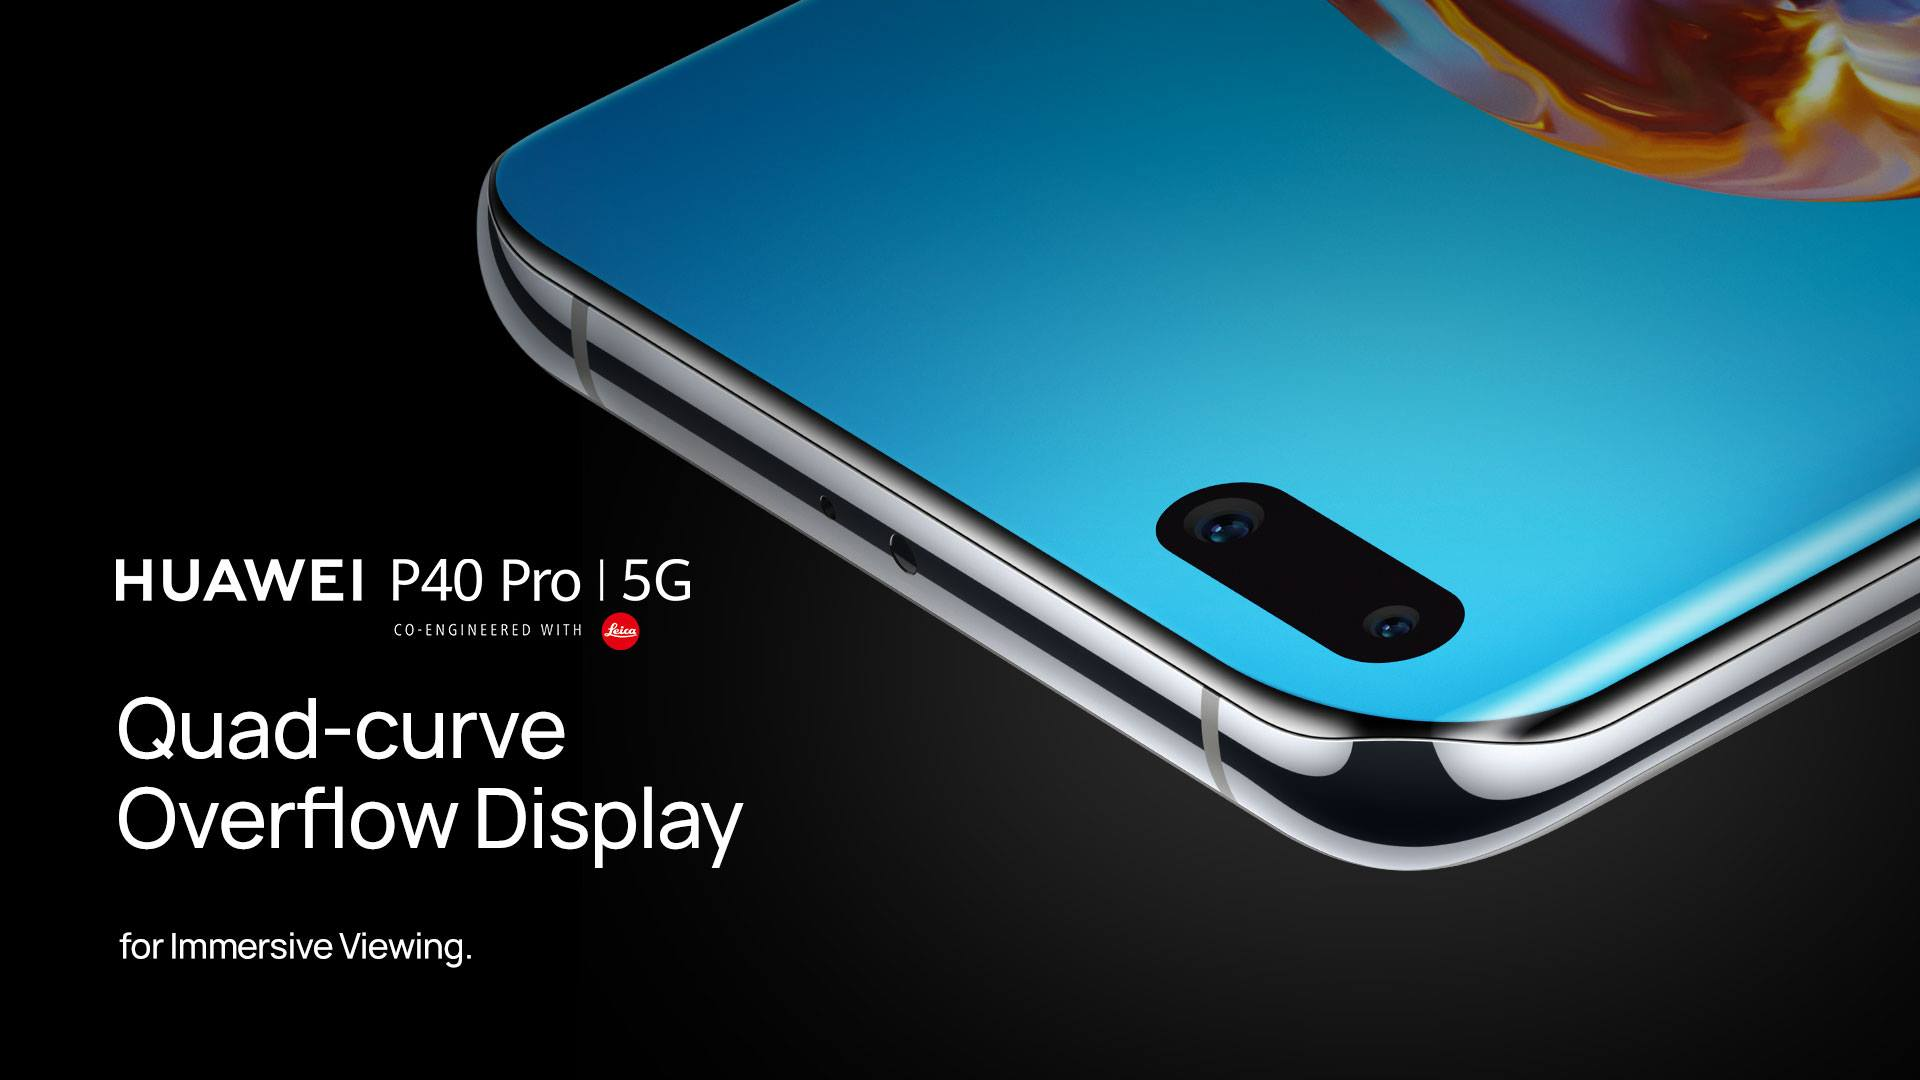 With a full immersion Quad-curve Overflow Display on the #HUAWEIP40 Pro, live life on the edge! 🤩